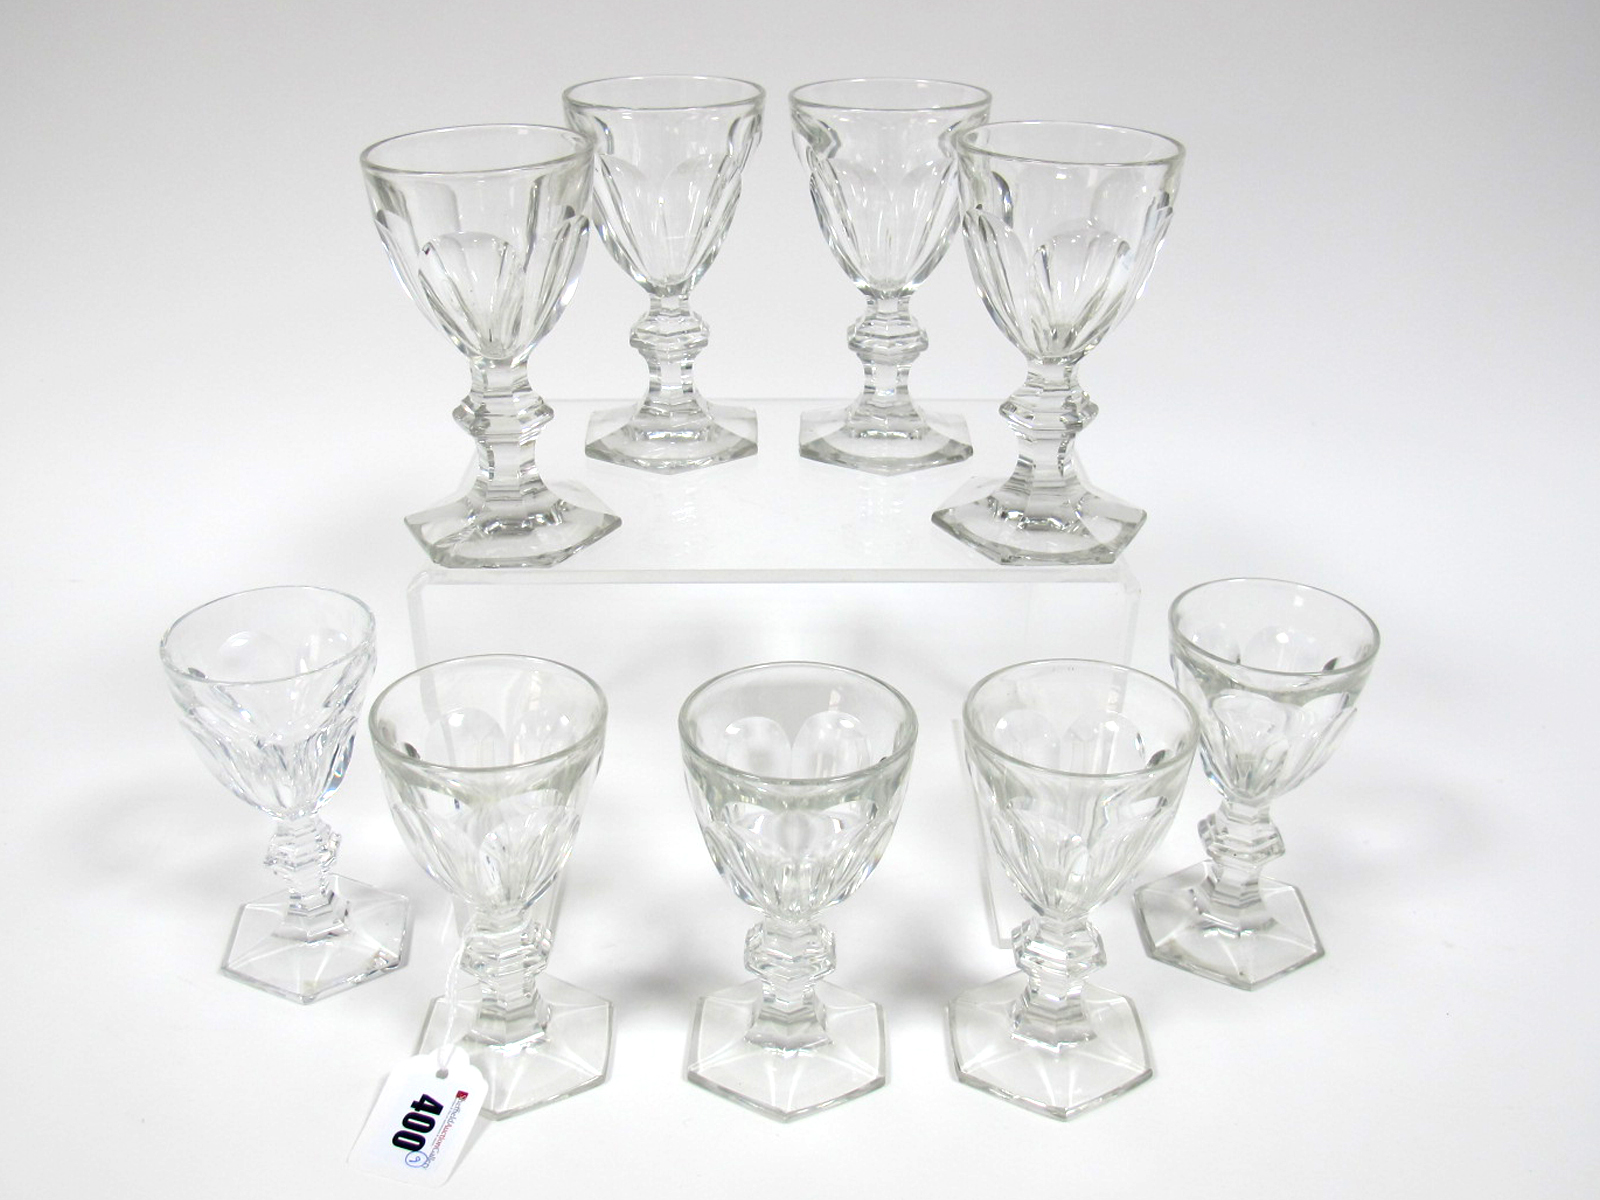 Lot 400 - A Set of Nine Baccarat 1930's Wine Glasses, in the Hamilton pattern, the slice cut acid bowls raised